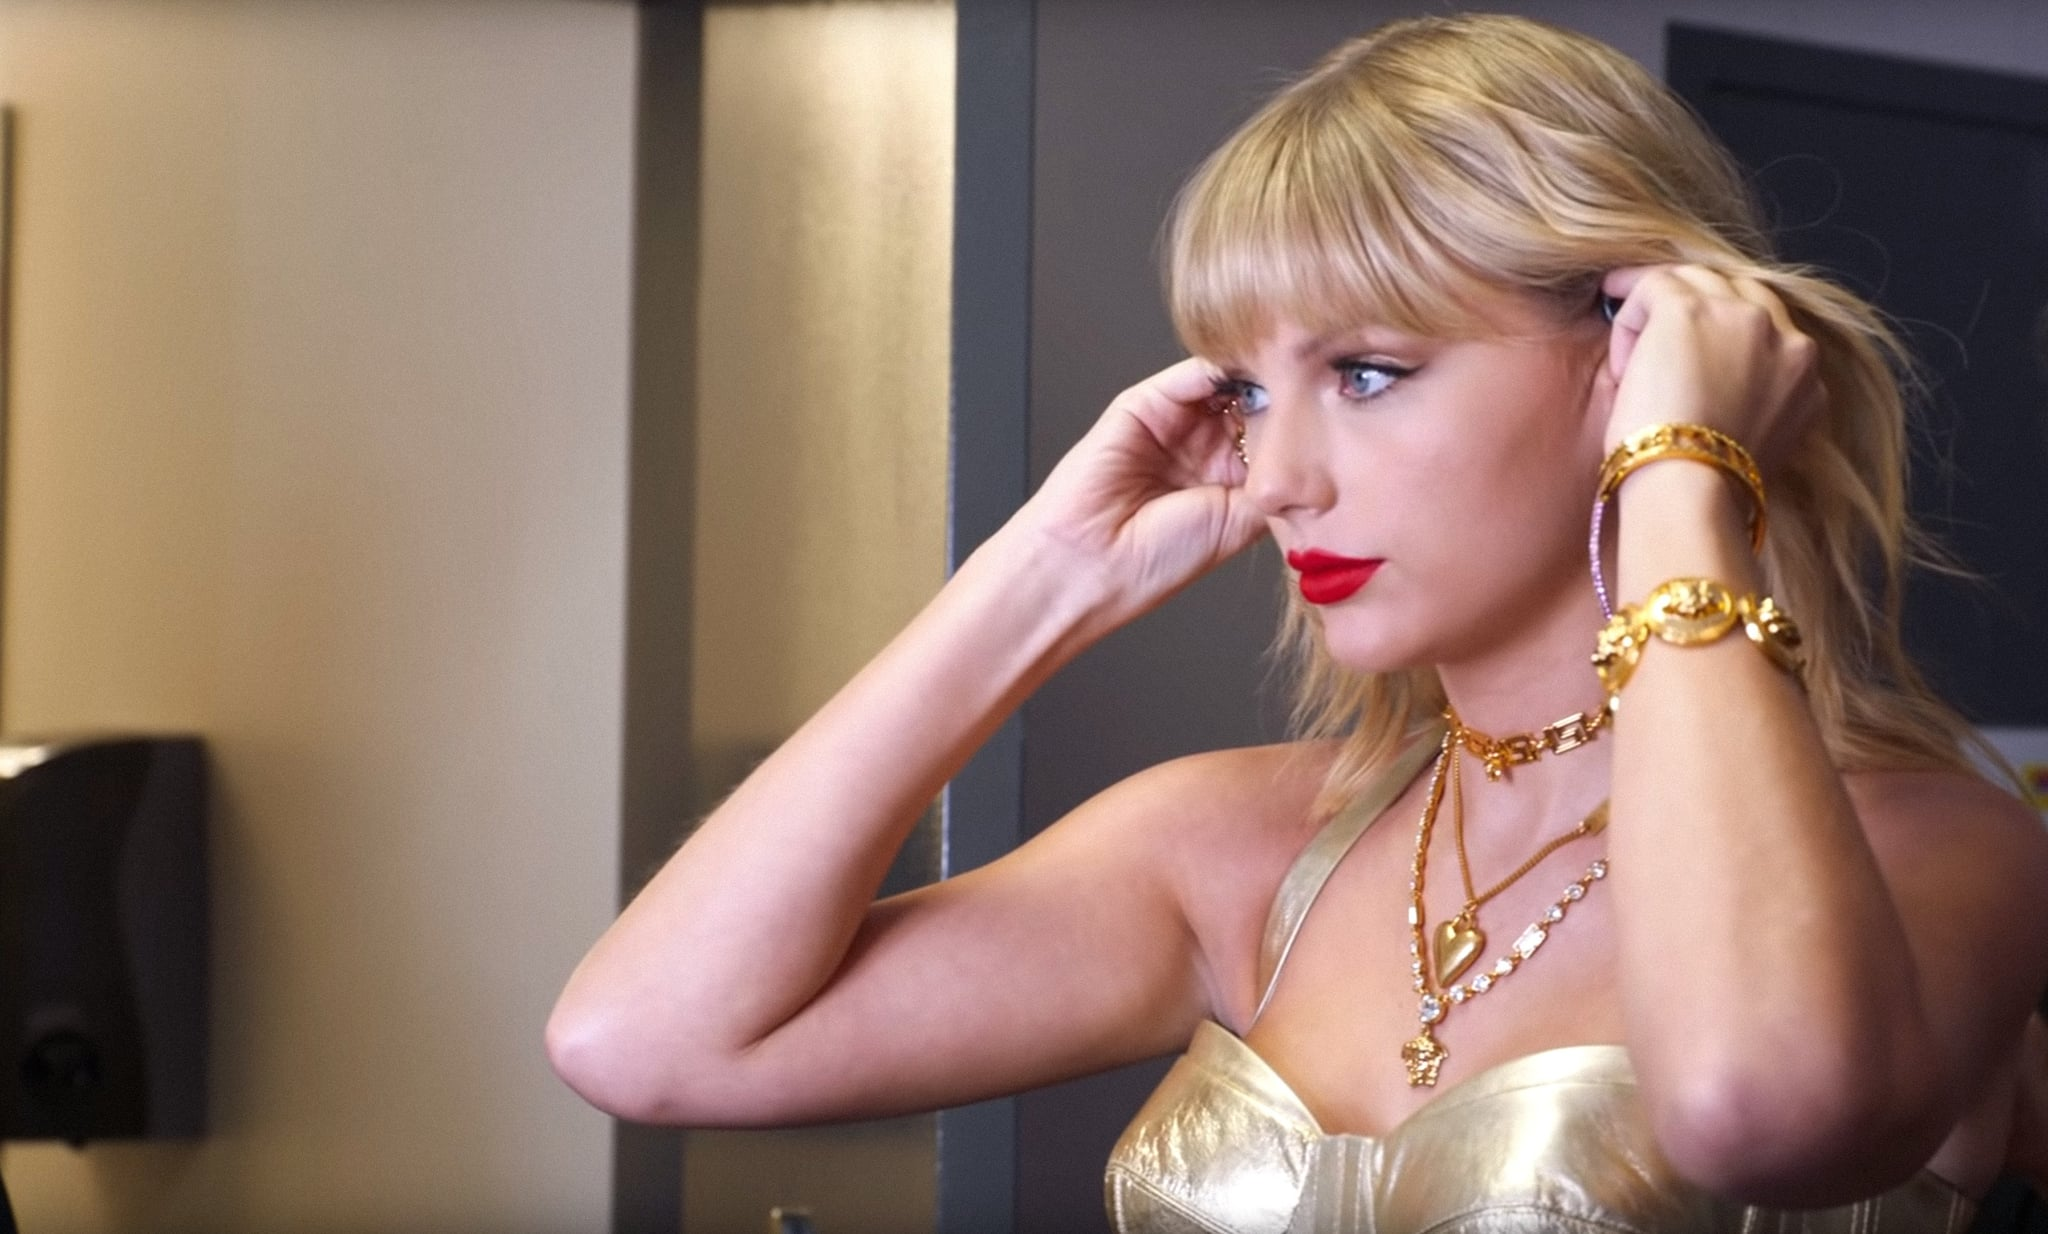 TAYLOR SWIFT: MISS AMERICANA, Taylor Swift preparing for her appearance on the 2019 MTV Video Music Awards (August 26, 2019, Prudential Centre, Newark, New Jersey), 2020.  Netflix / courtesy Everett Collection